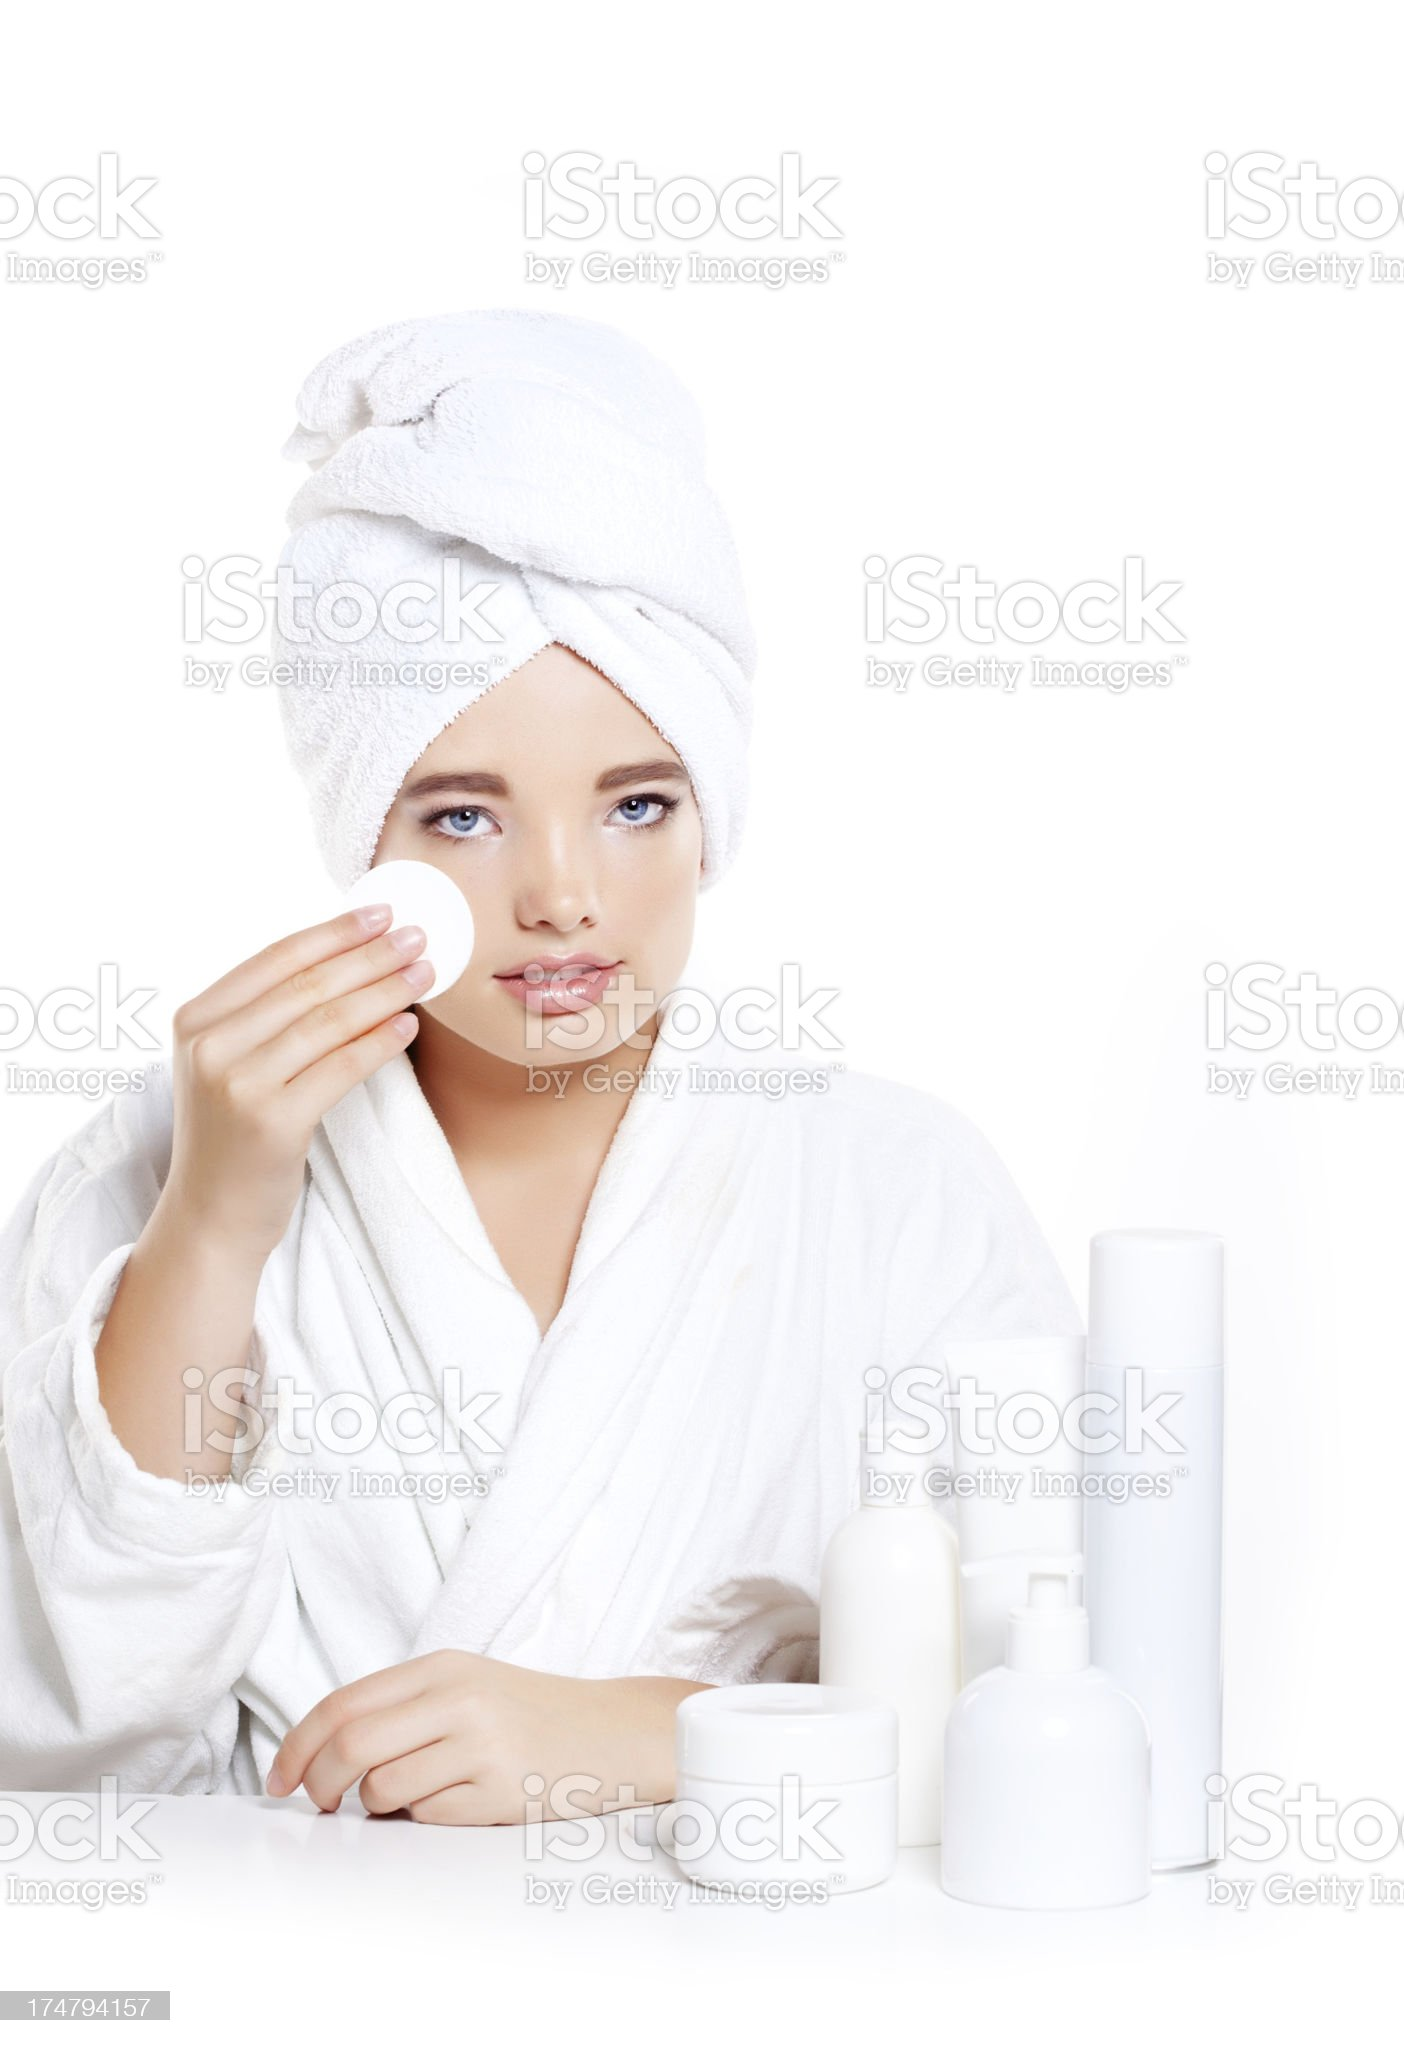 cleaning face teenager royalty-free stock photo